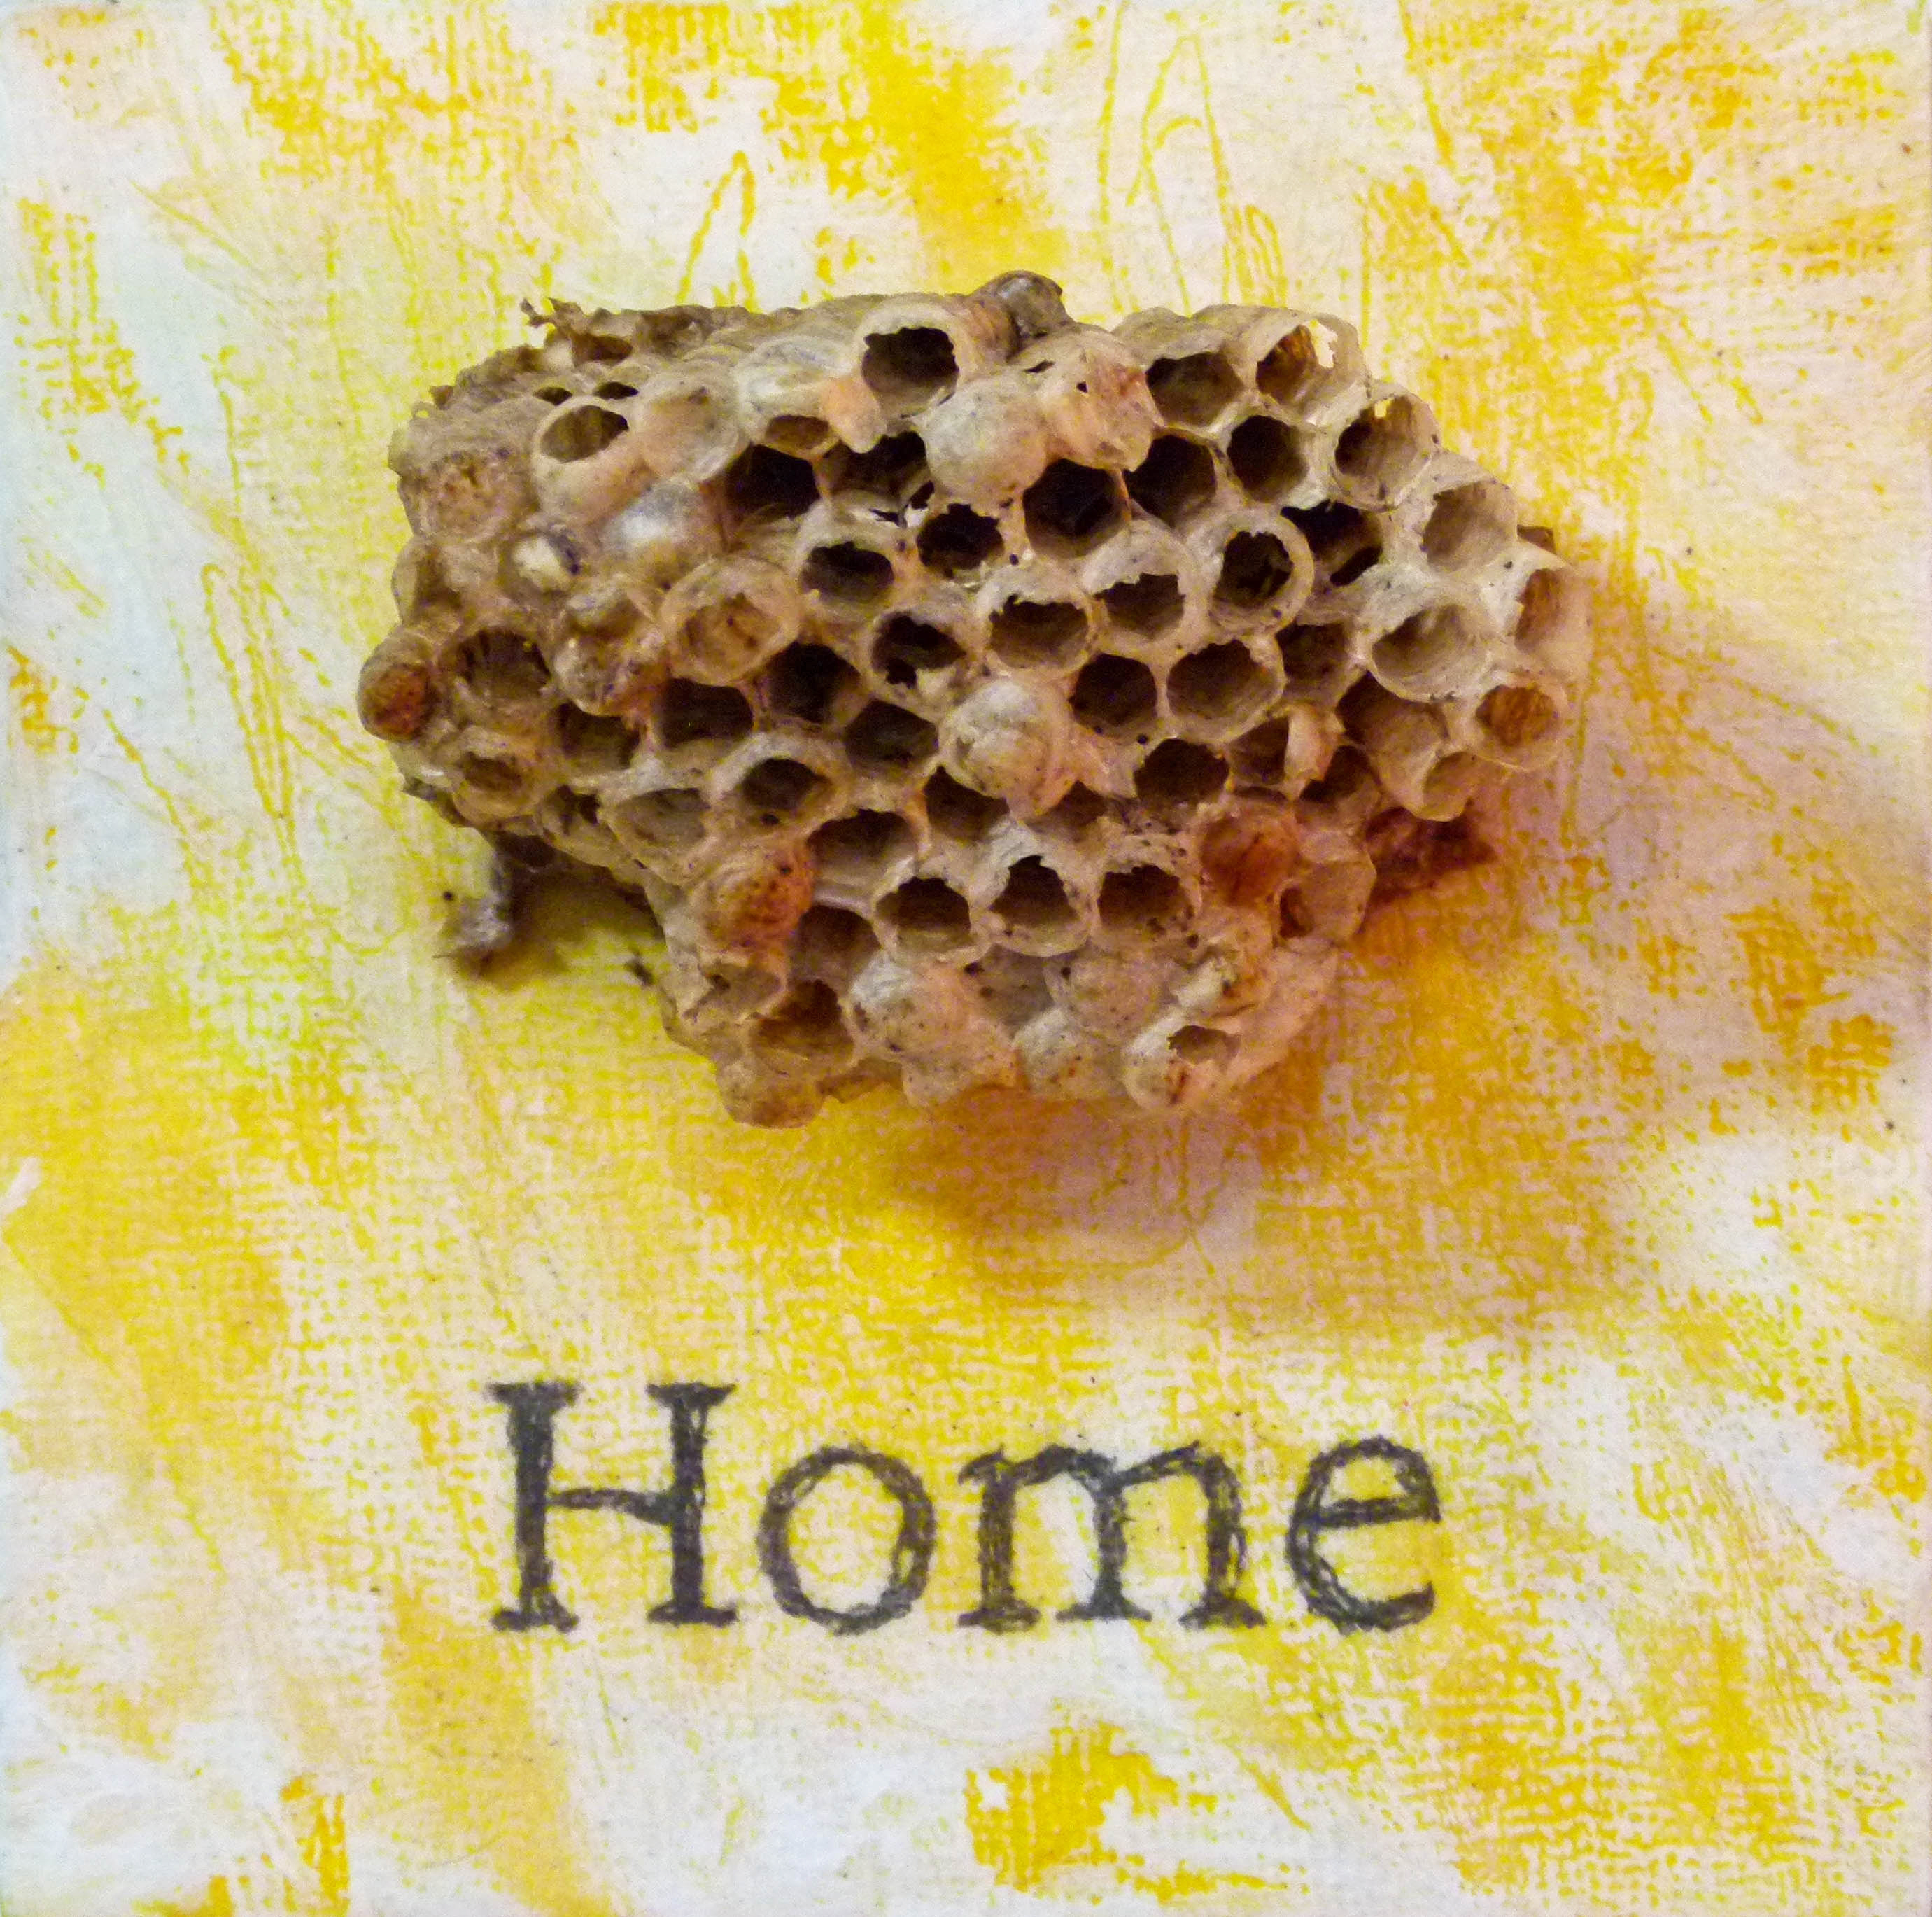 Wasp nest and text on panel